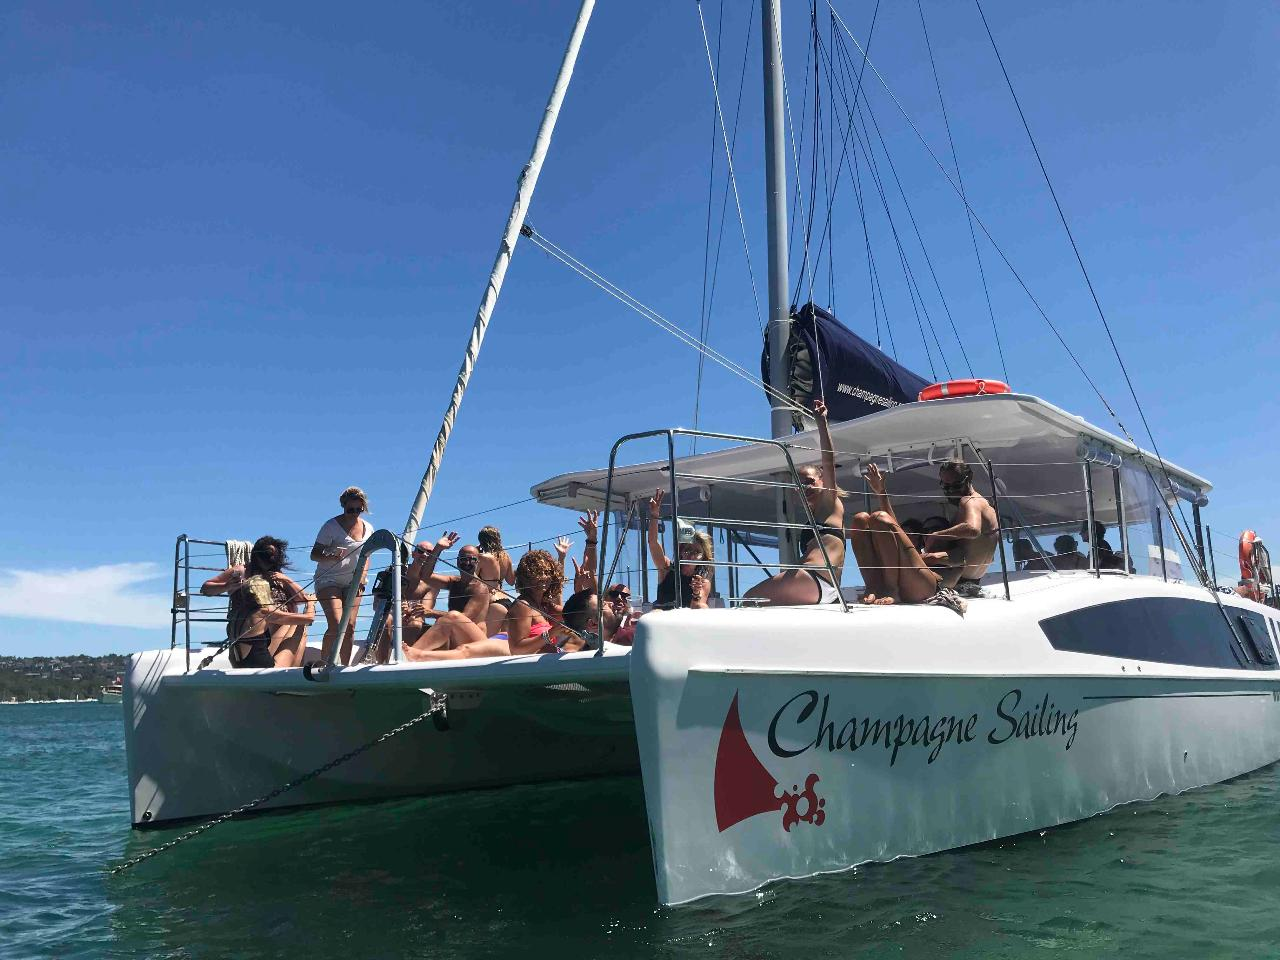 CHAMPAGNE SAILING  Catamaran hire for up to 30 guests (COVID Capacity max 22 people)